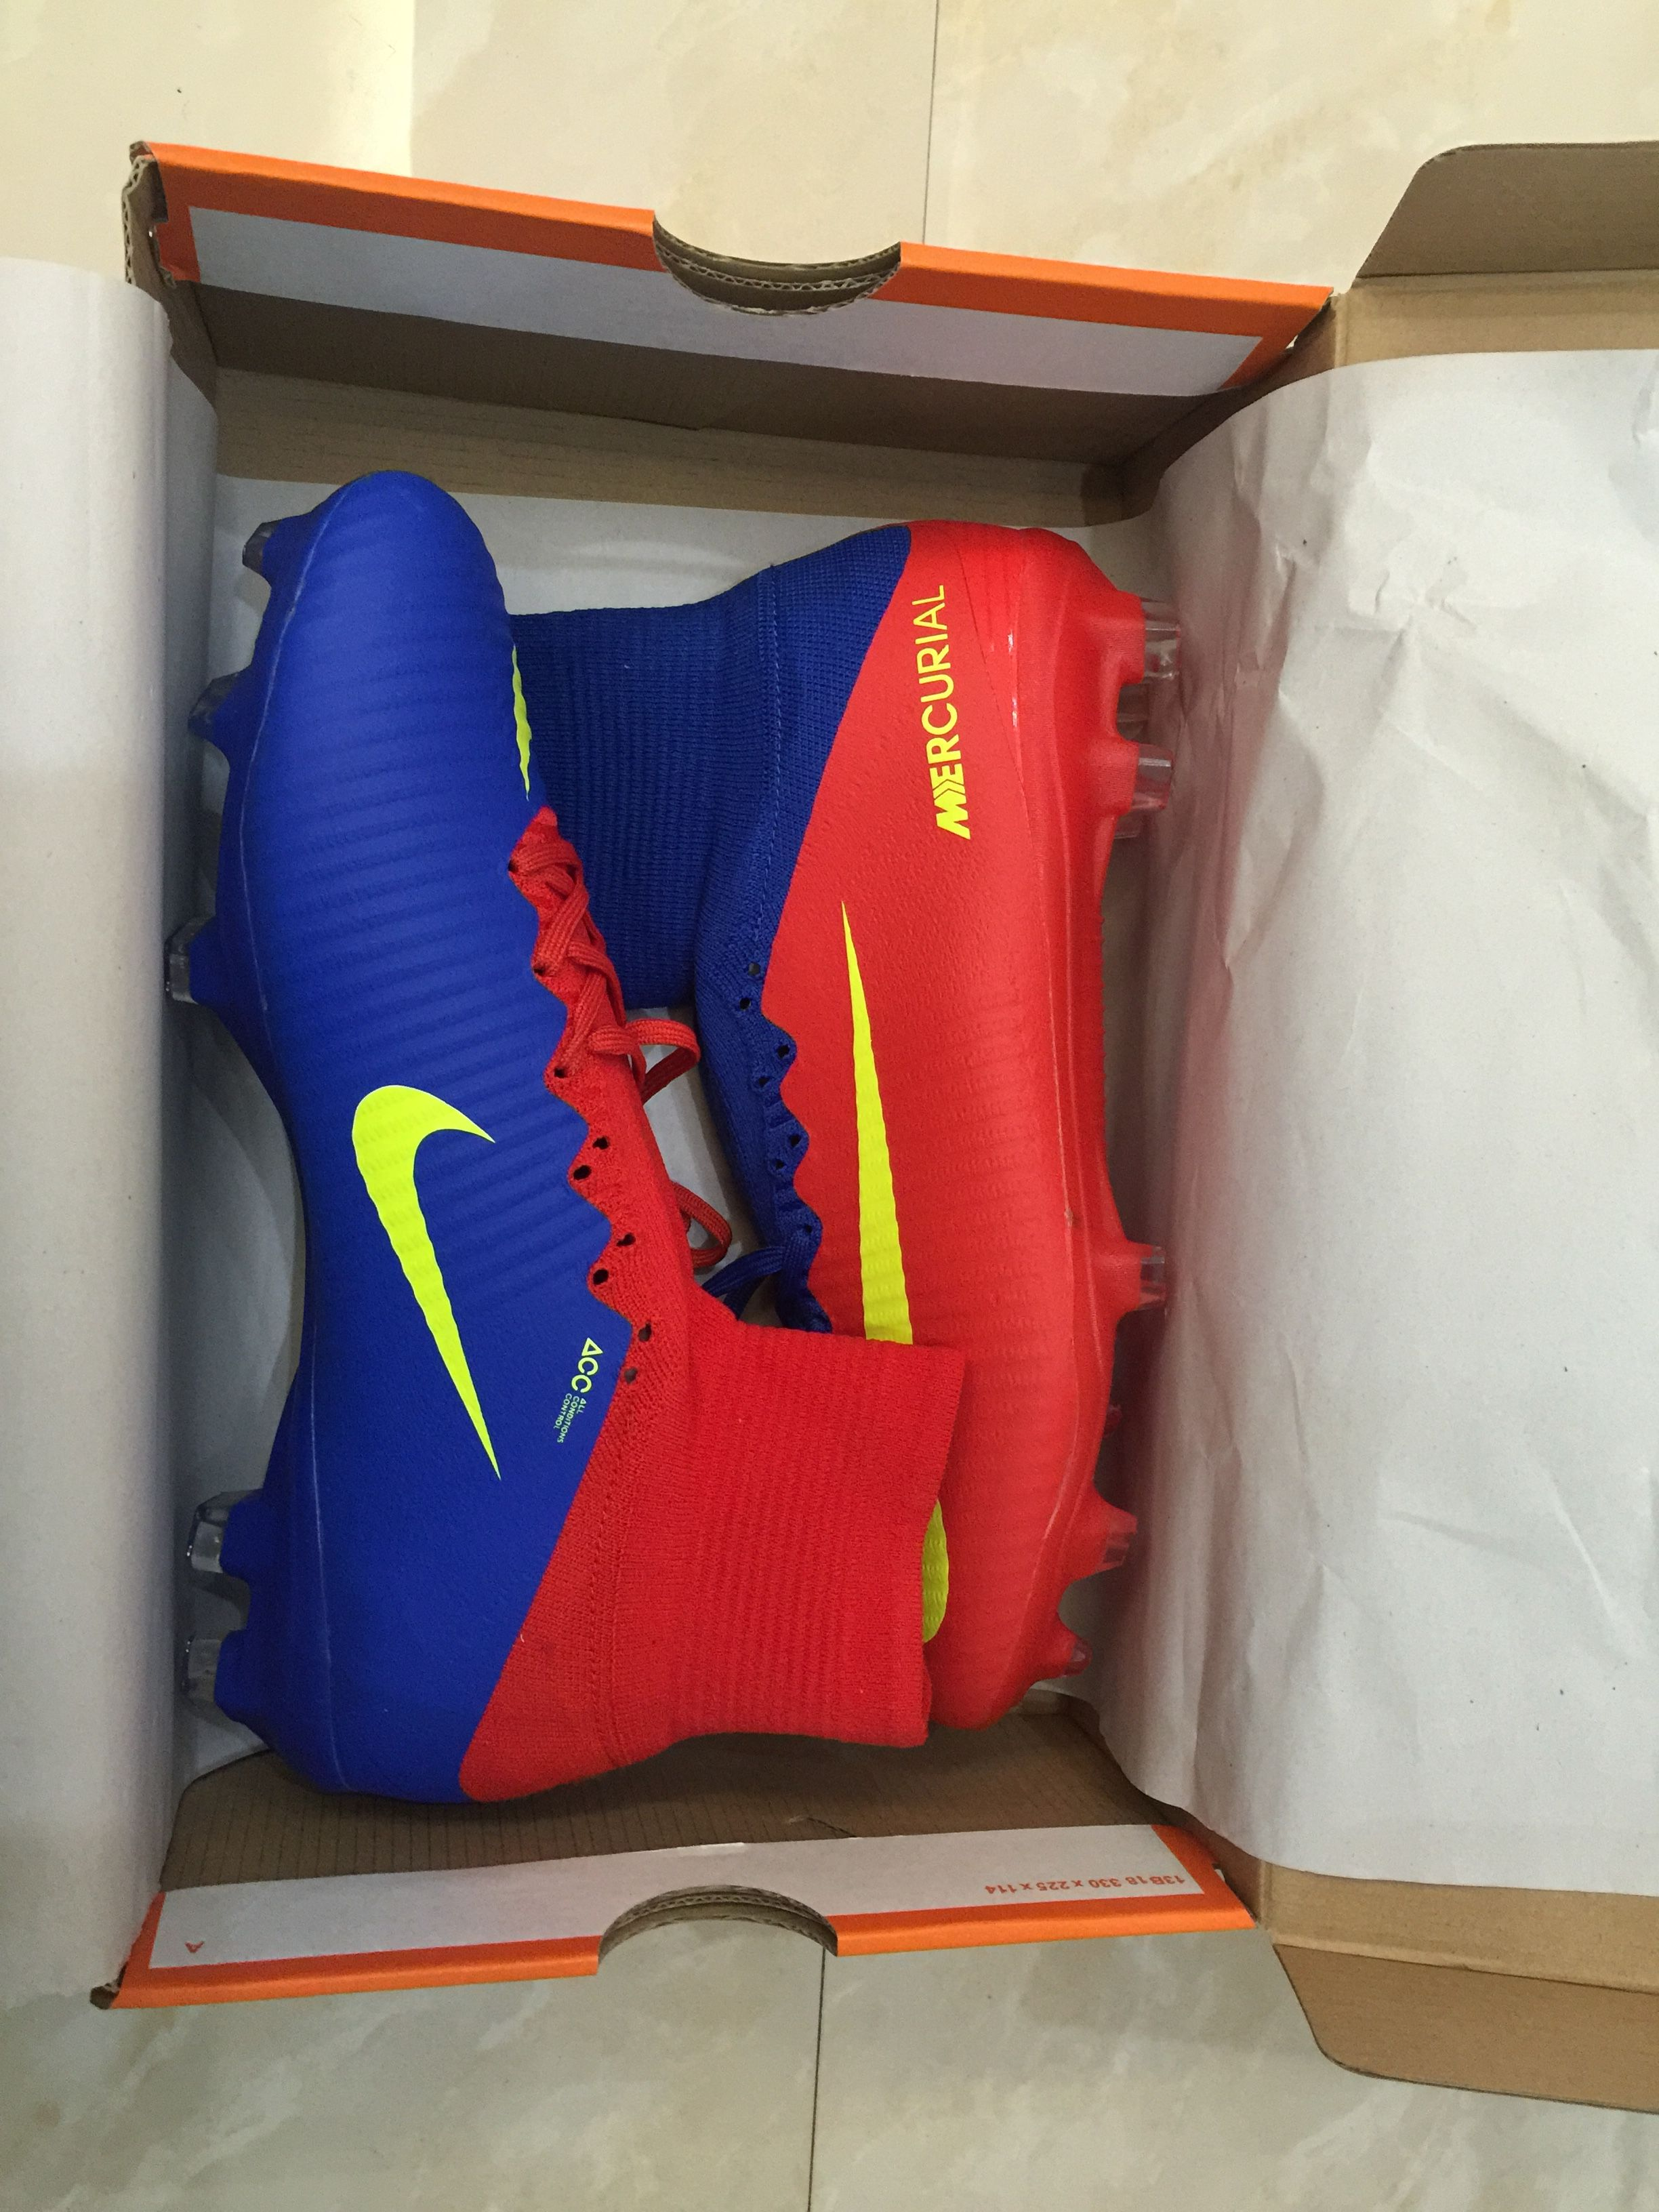 88688a7f9de More 50% off New Nike Mercurial Superfly V FG Blue Red Yellow checkout    sportcleatsuk.co.uk